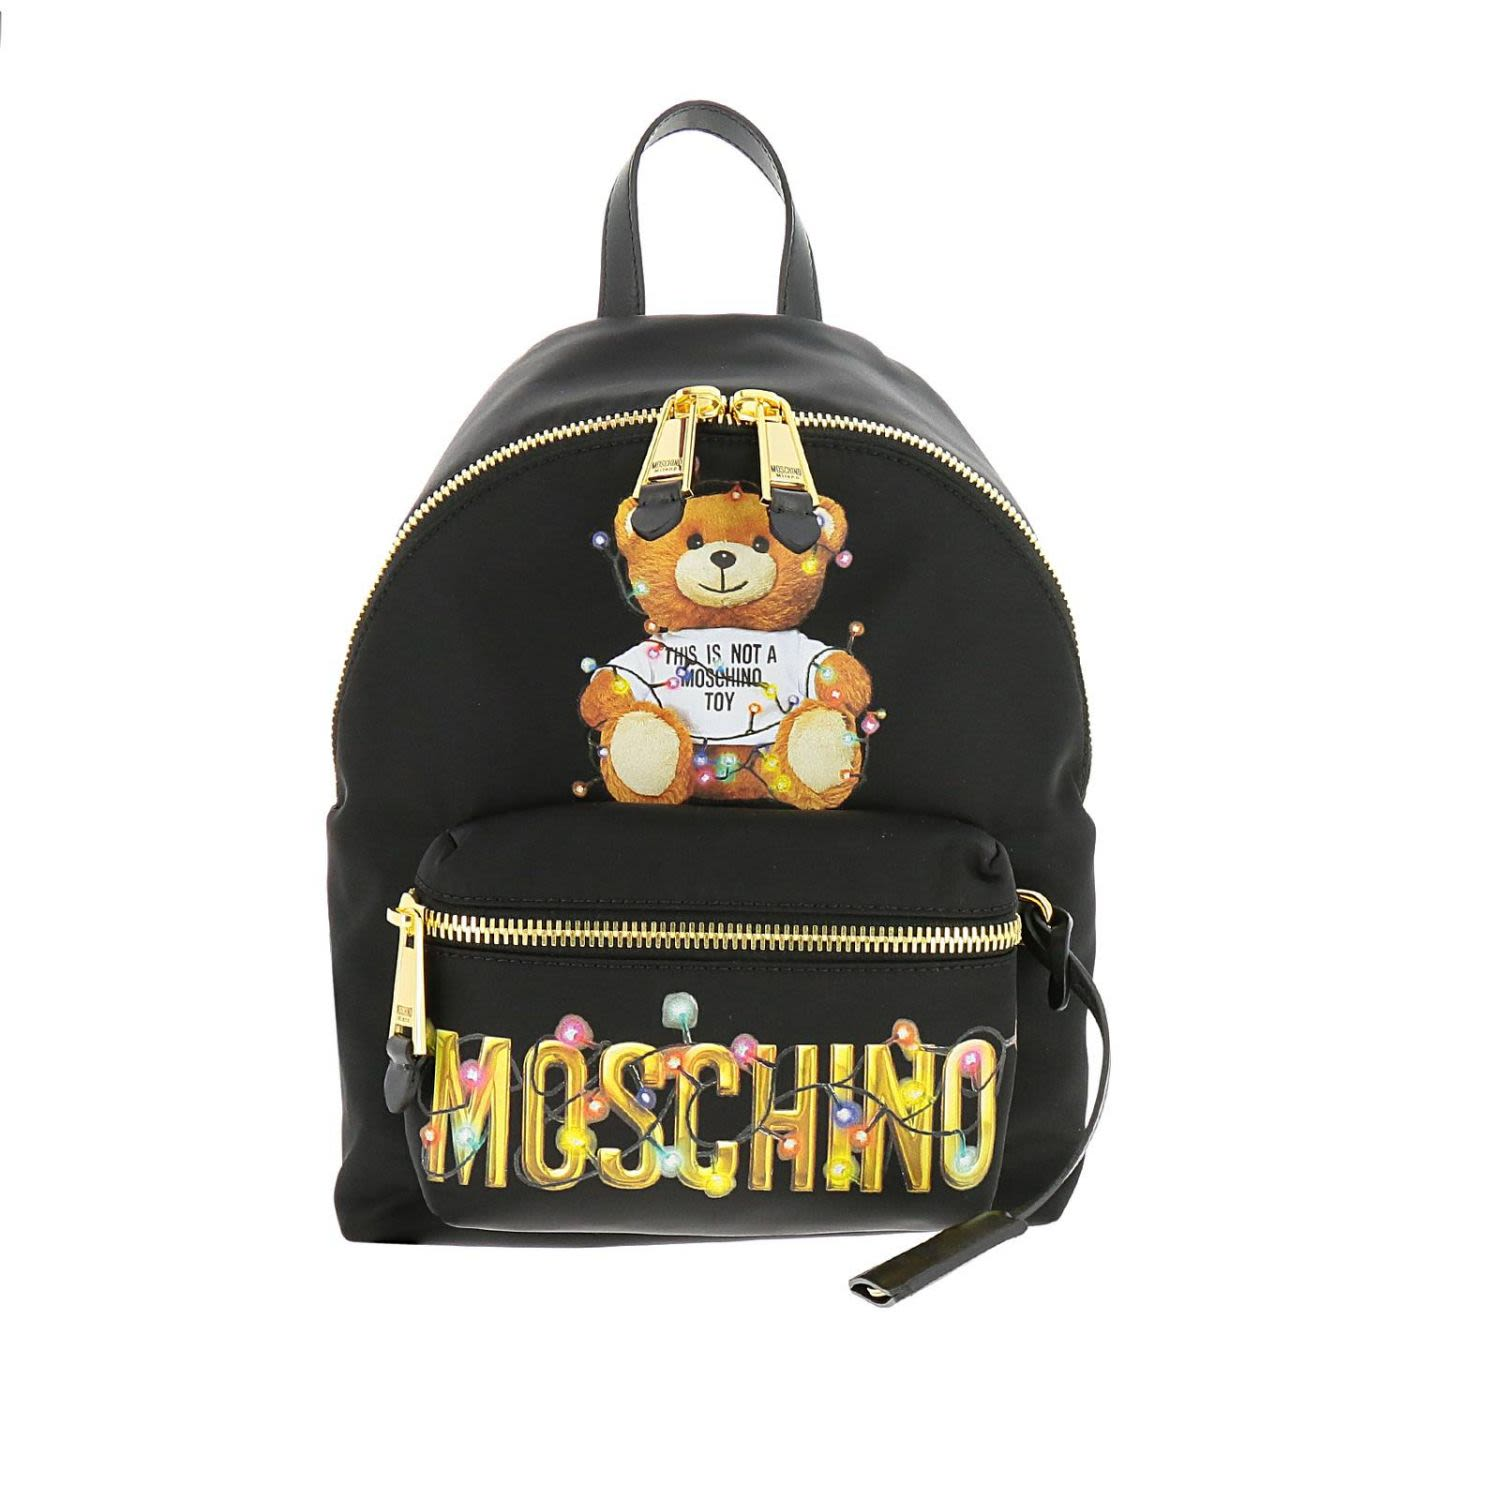 moschino -  Couture Backpack  Capsule Collection Small Nylon Backpack With Teddy Christmas  Print